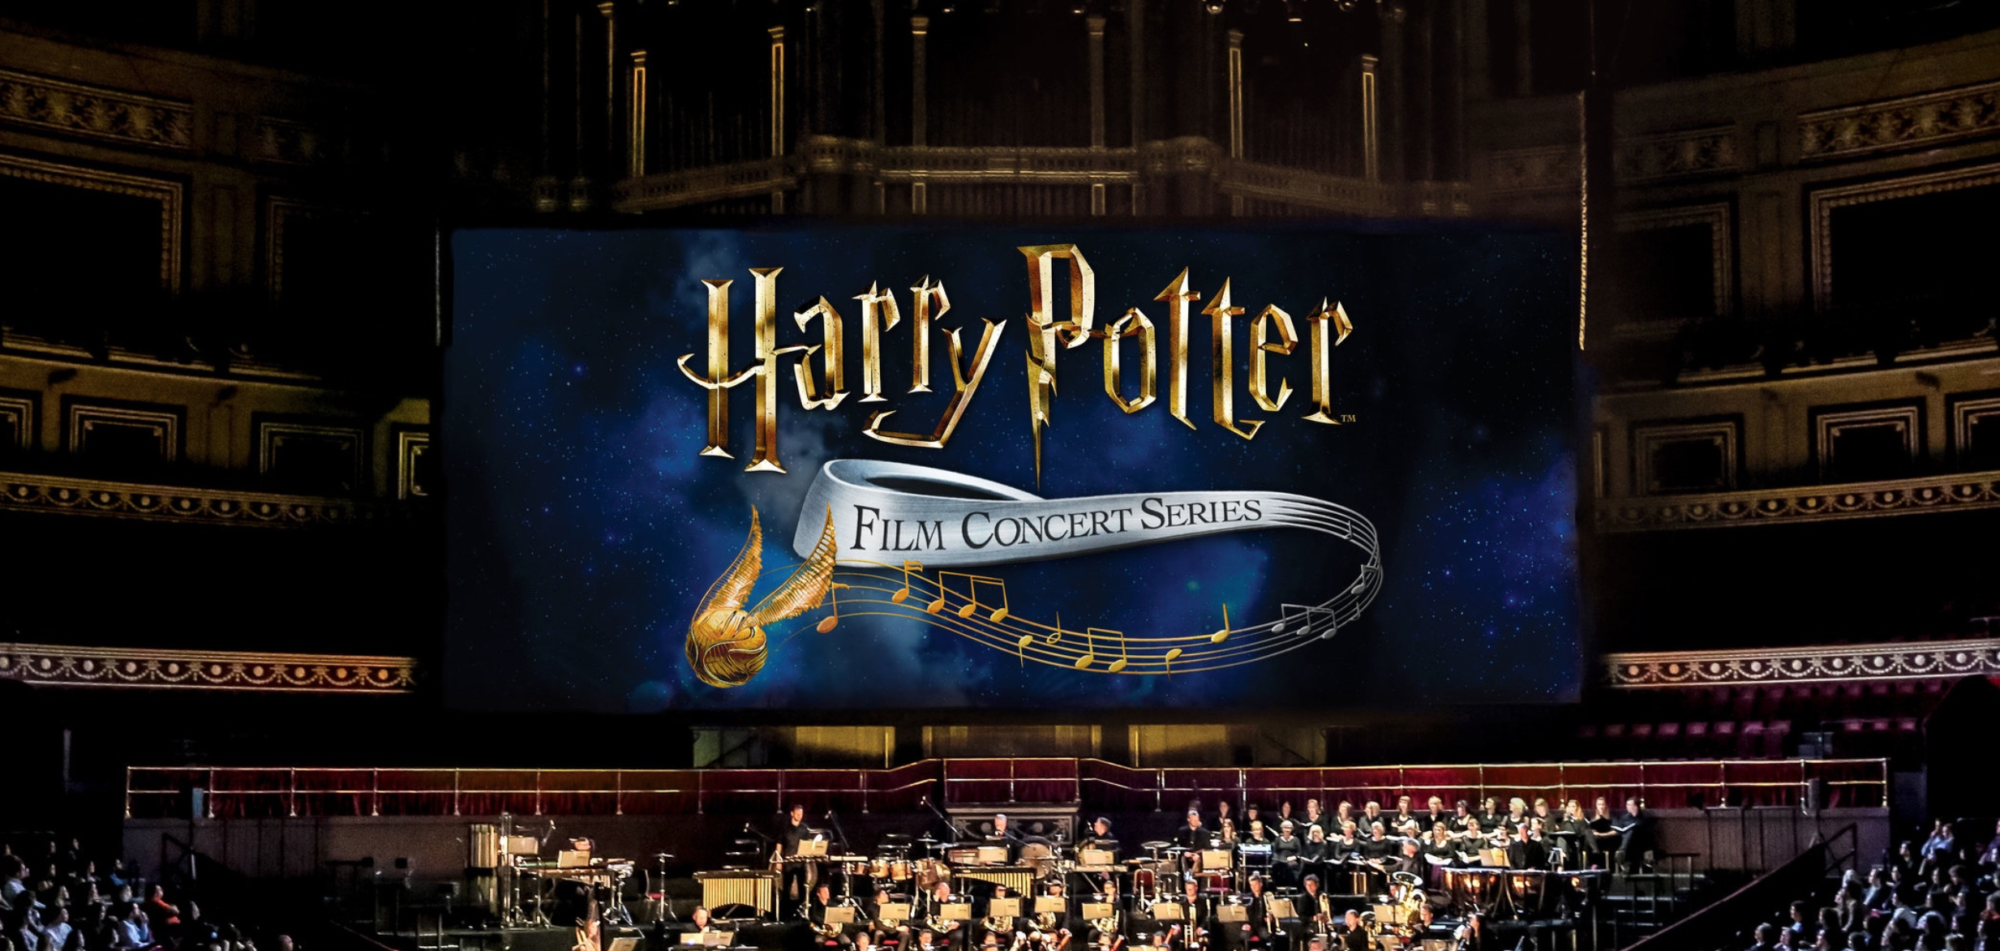 events macau april Harry Potter Film Concert Series 2019